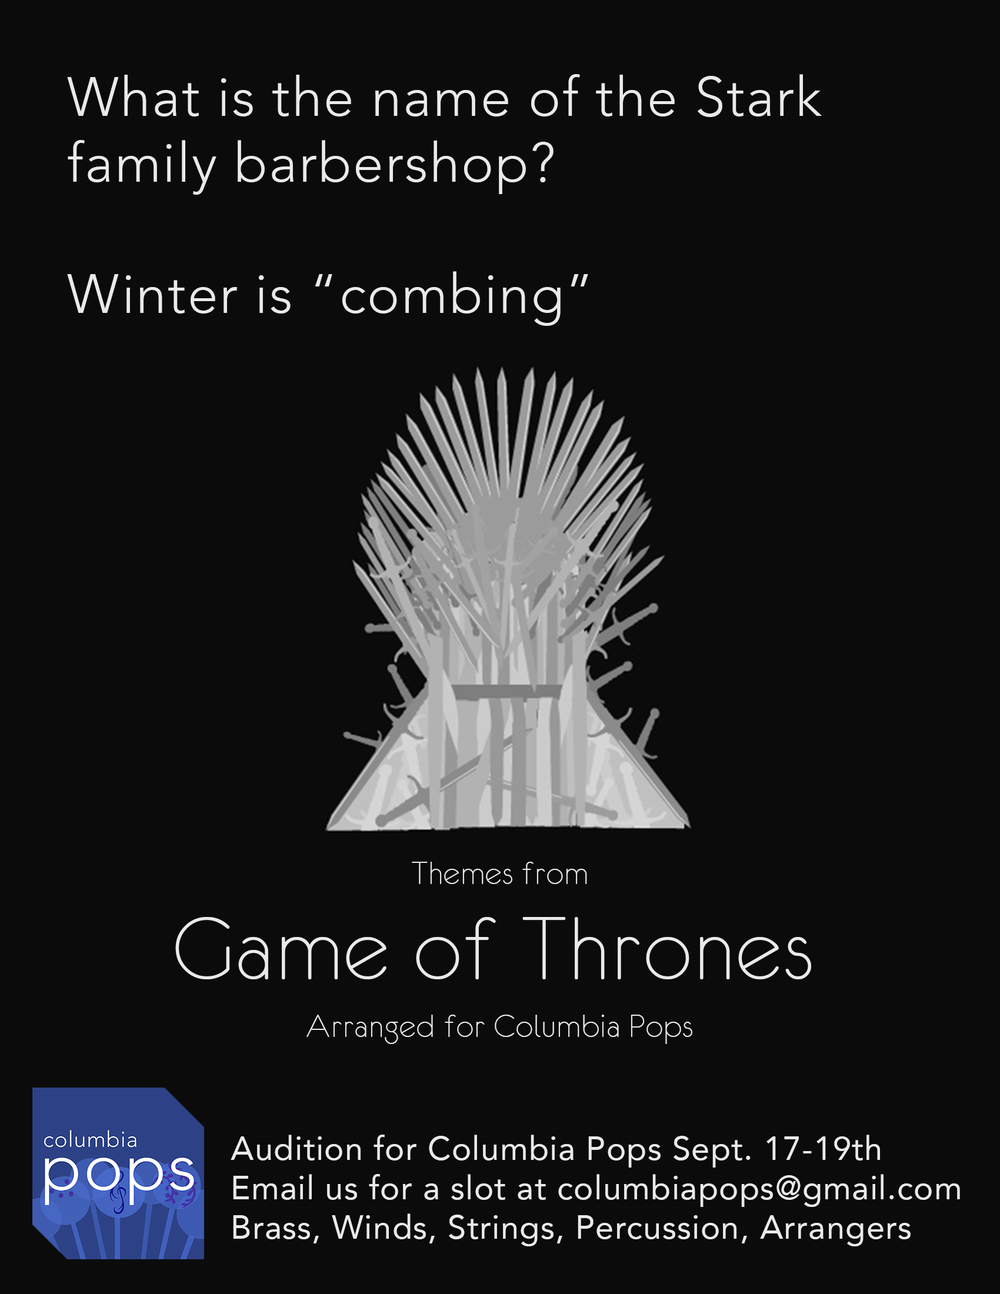 game_of_thrones.png